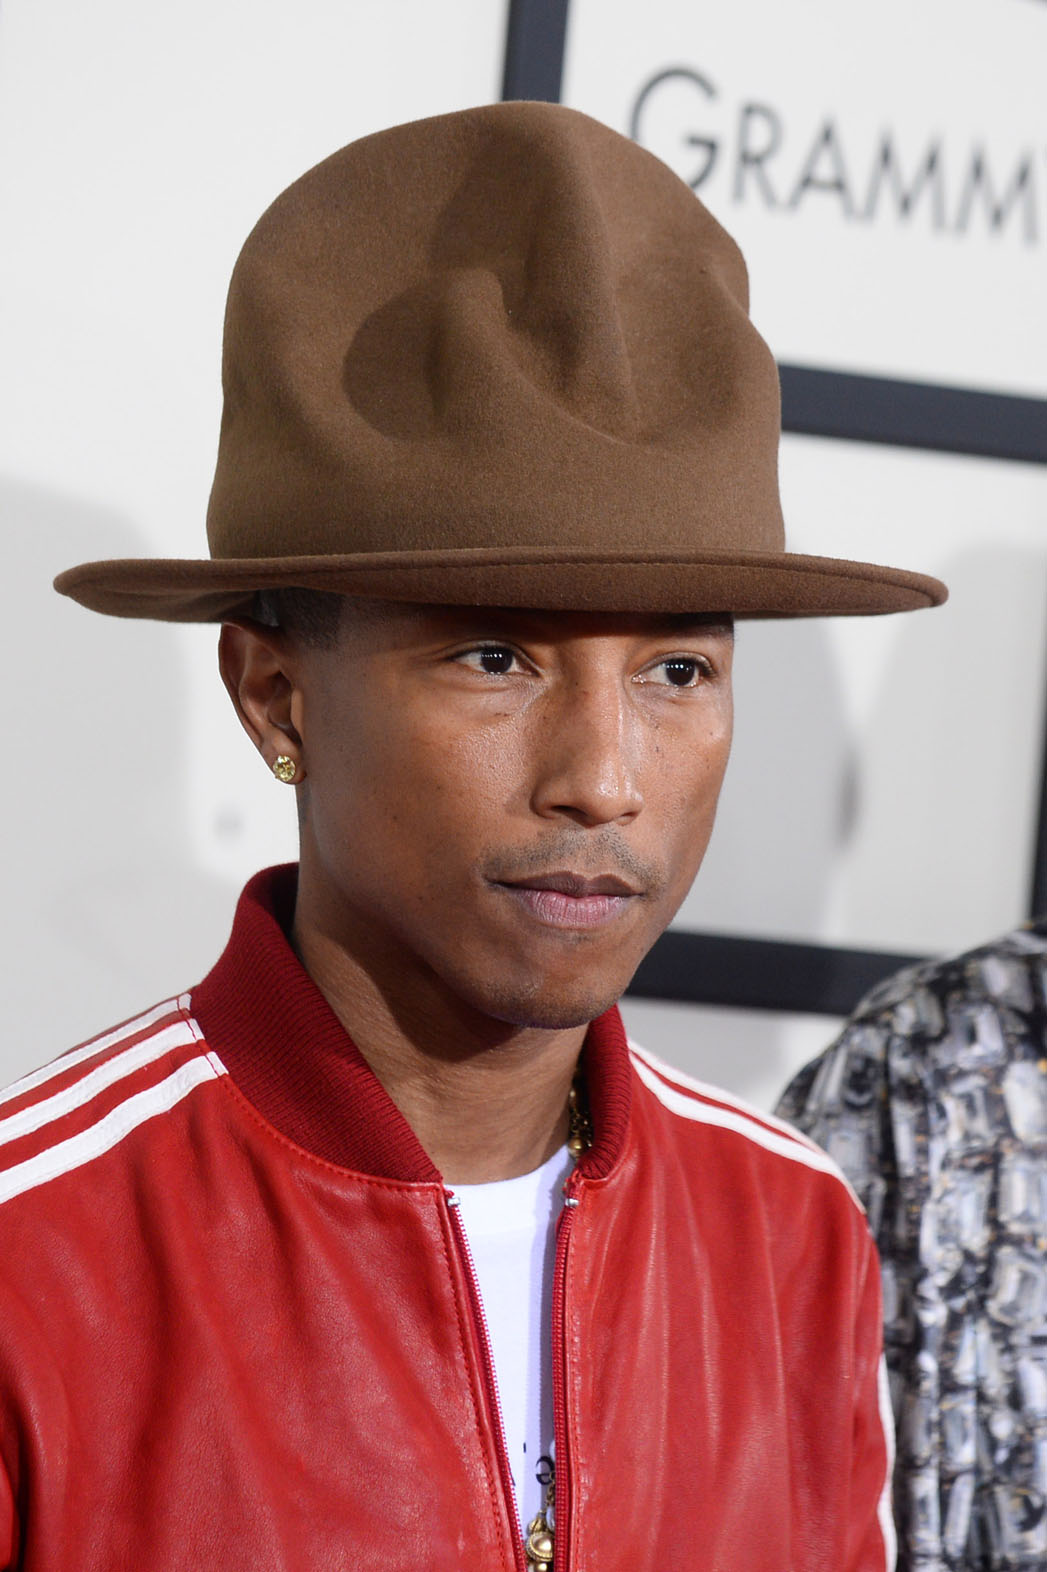 What's with the horrible hat Pharrell?  UGH.